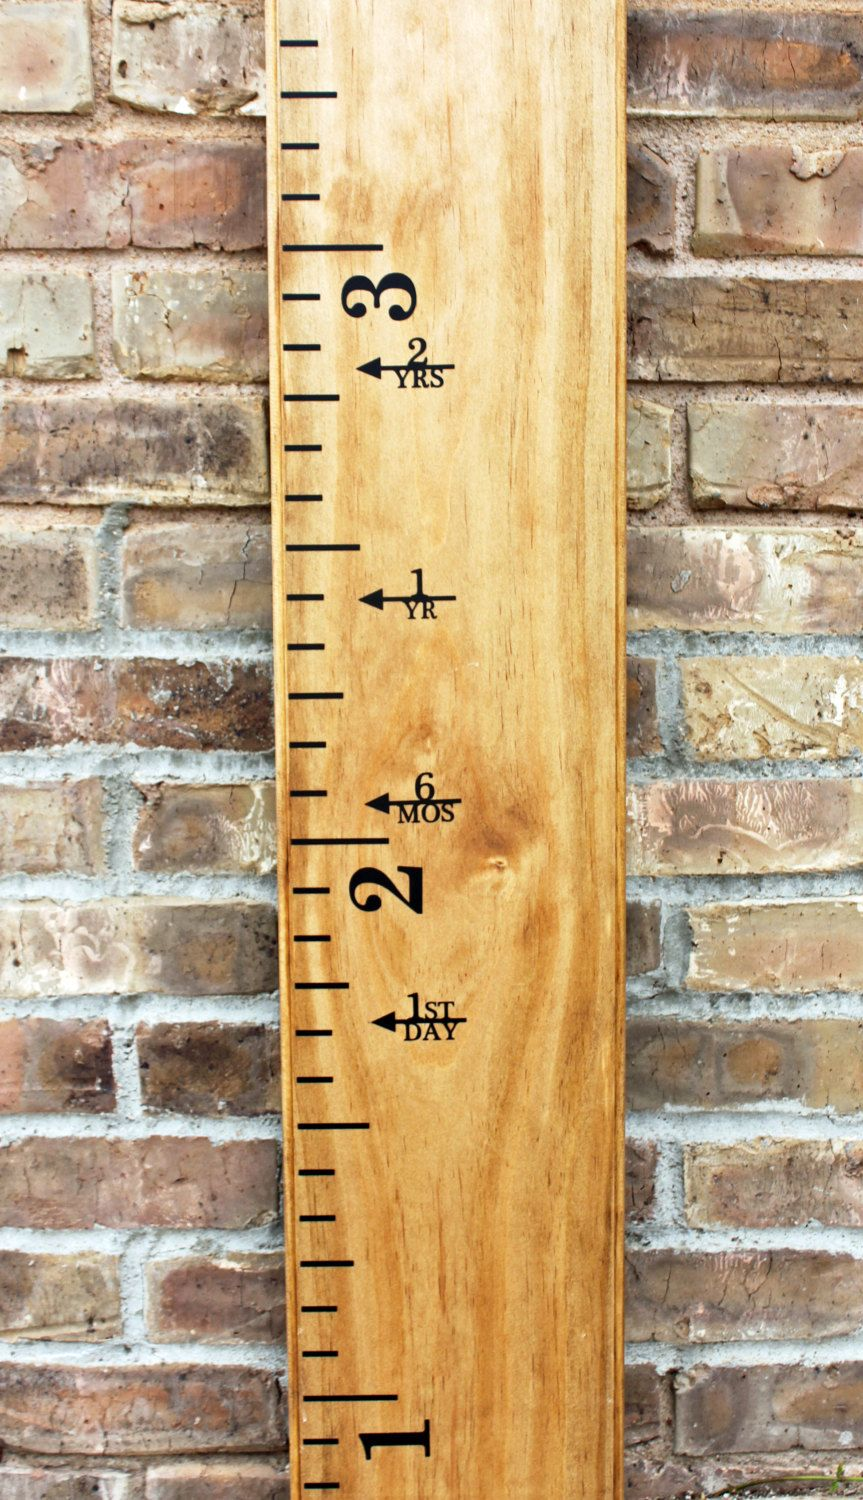 Vinyl Decal Height Markers For A Growth Chart Ruler Arrow With - Ruler growth chart vinyl decal